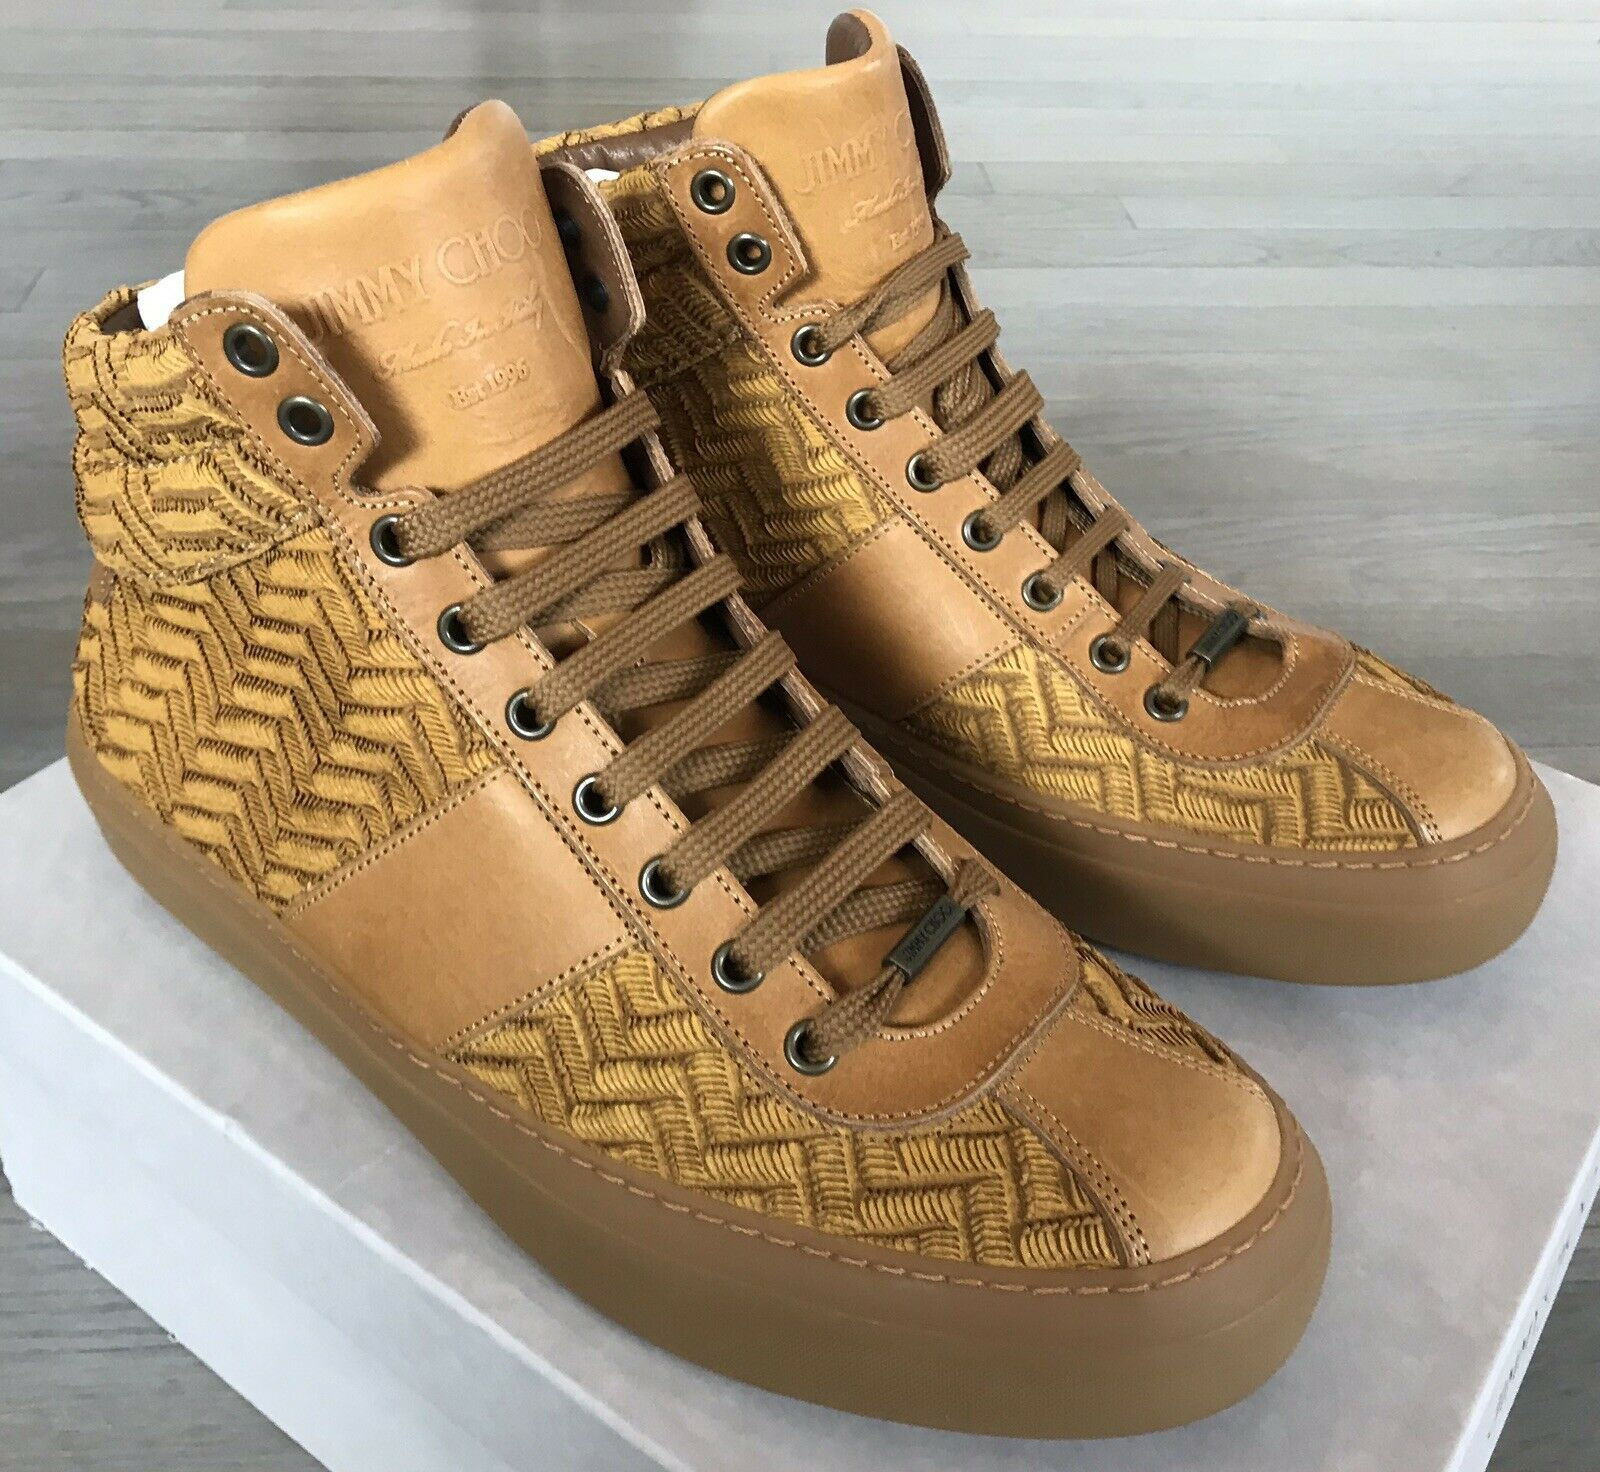 Jimmy Choo Belgravi Saddle Mens High Tops Sneakers size US 11, Made in Italy – New